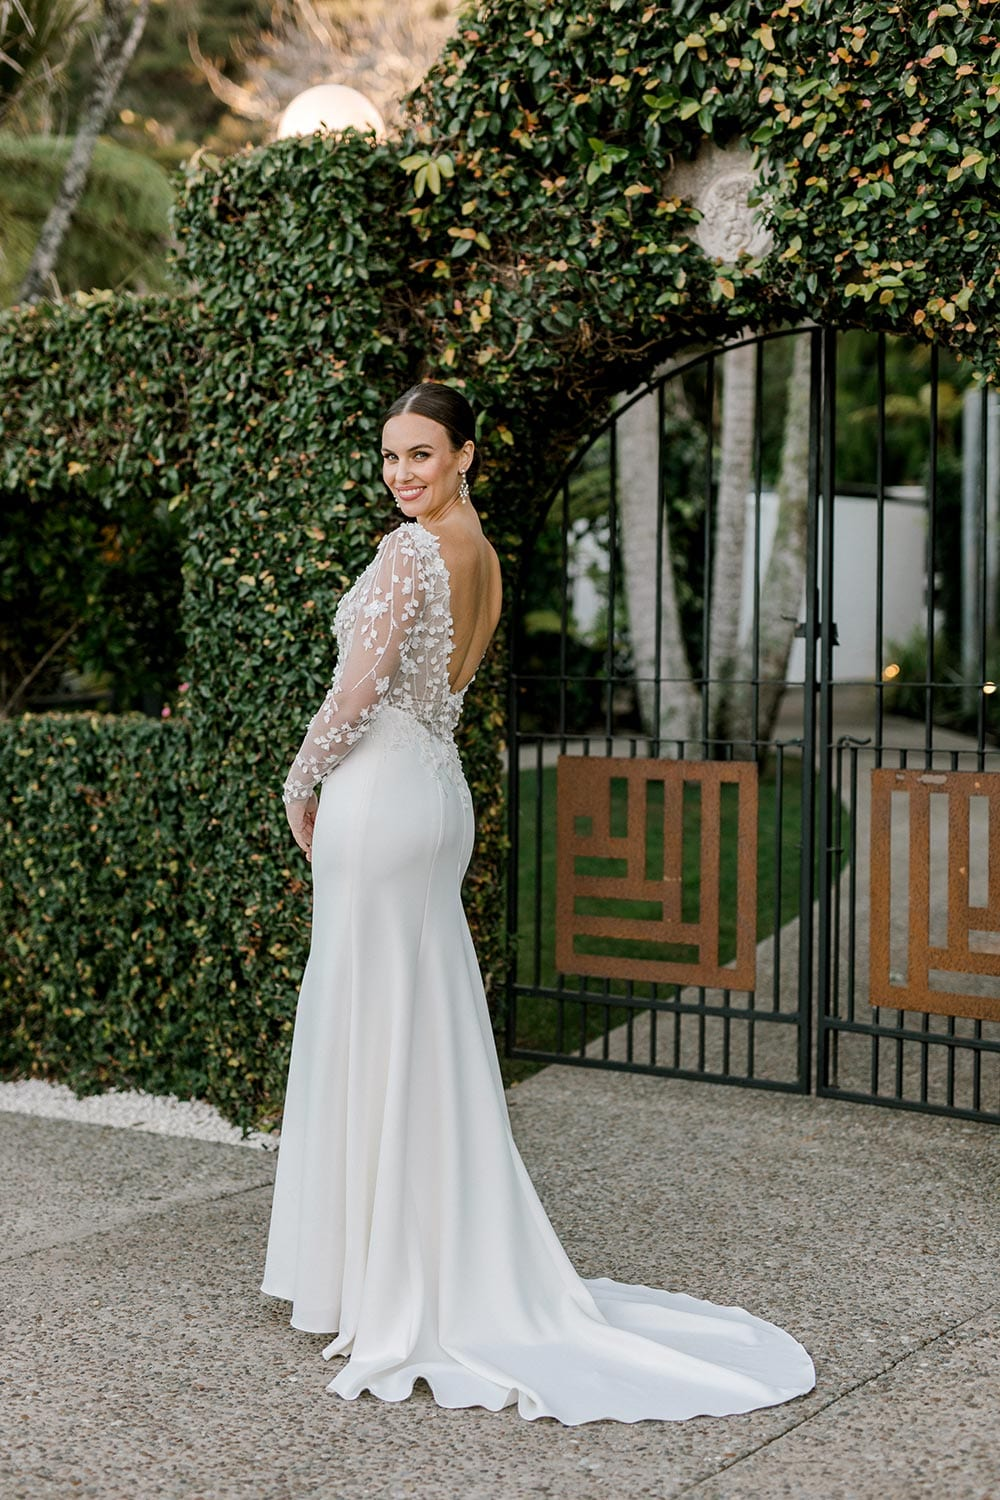 Celeste Wedding Dress from Vinka Design. Gorgeous form fitting stretch fabric wedding dress. The bodice is nude & semi-sheer, featuring 3-D beaded leaf lace, a deep V-neckline and a low V-shaped back with long sleeves. Full length portrait of side of dress with train to the back, photographed at Tui Hills by Emmaline Photography.